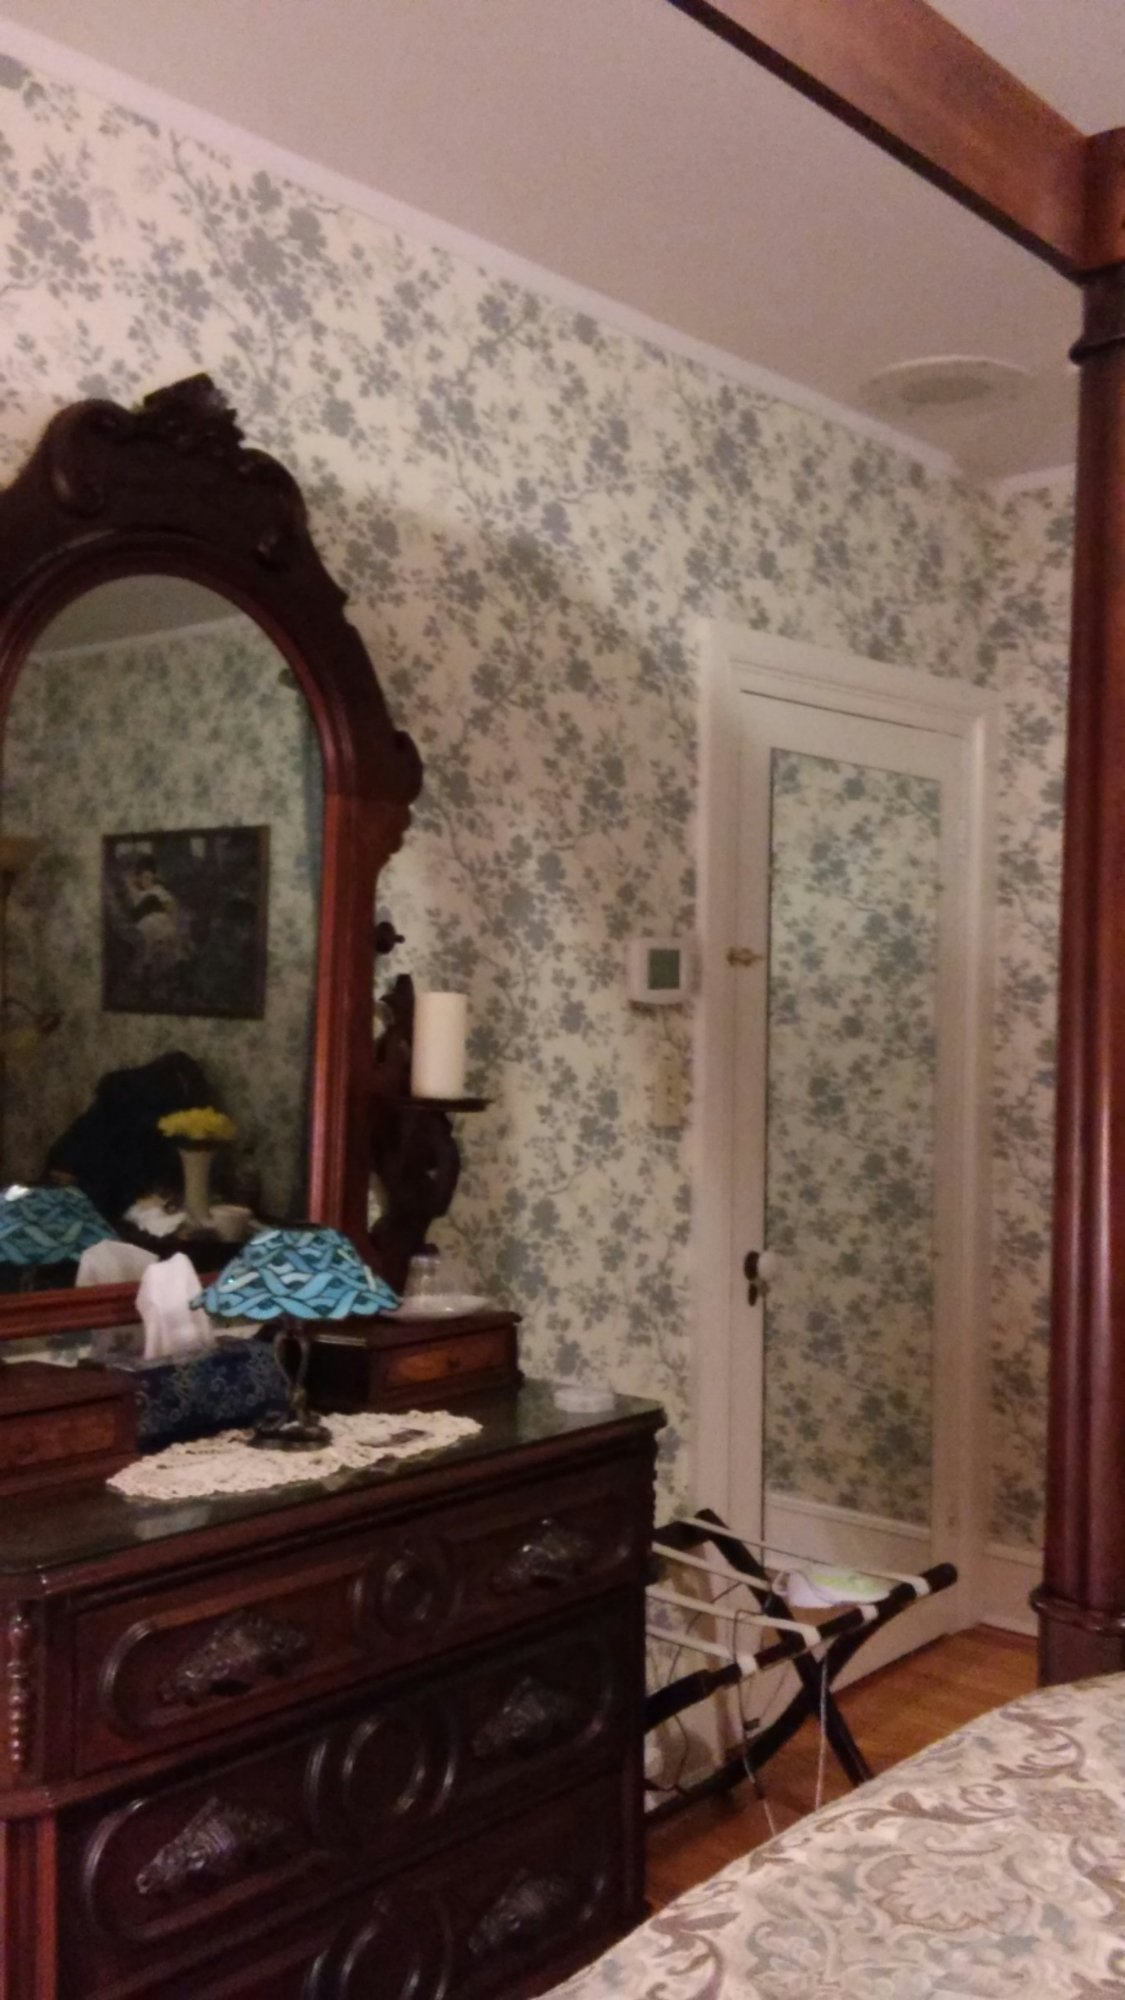 Blue Hen Bed & Breakfast UPDATED 2018 Prices & B&B Reviews